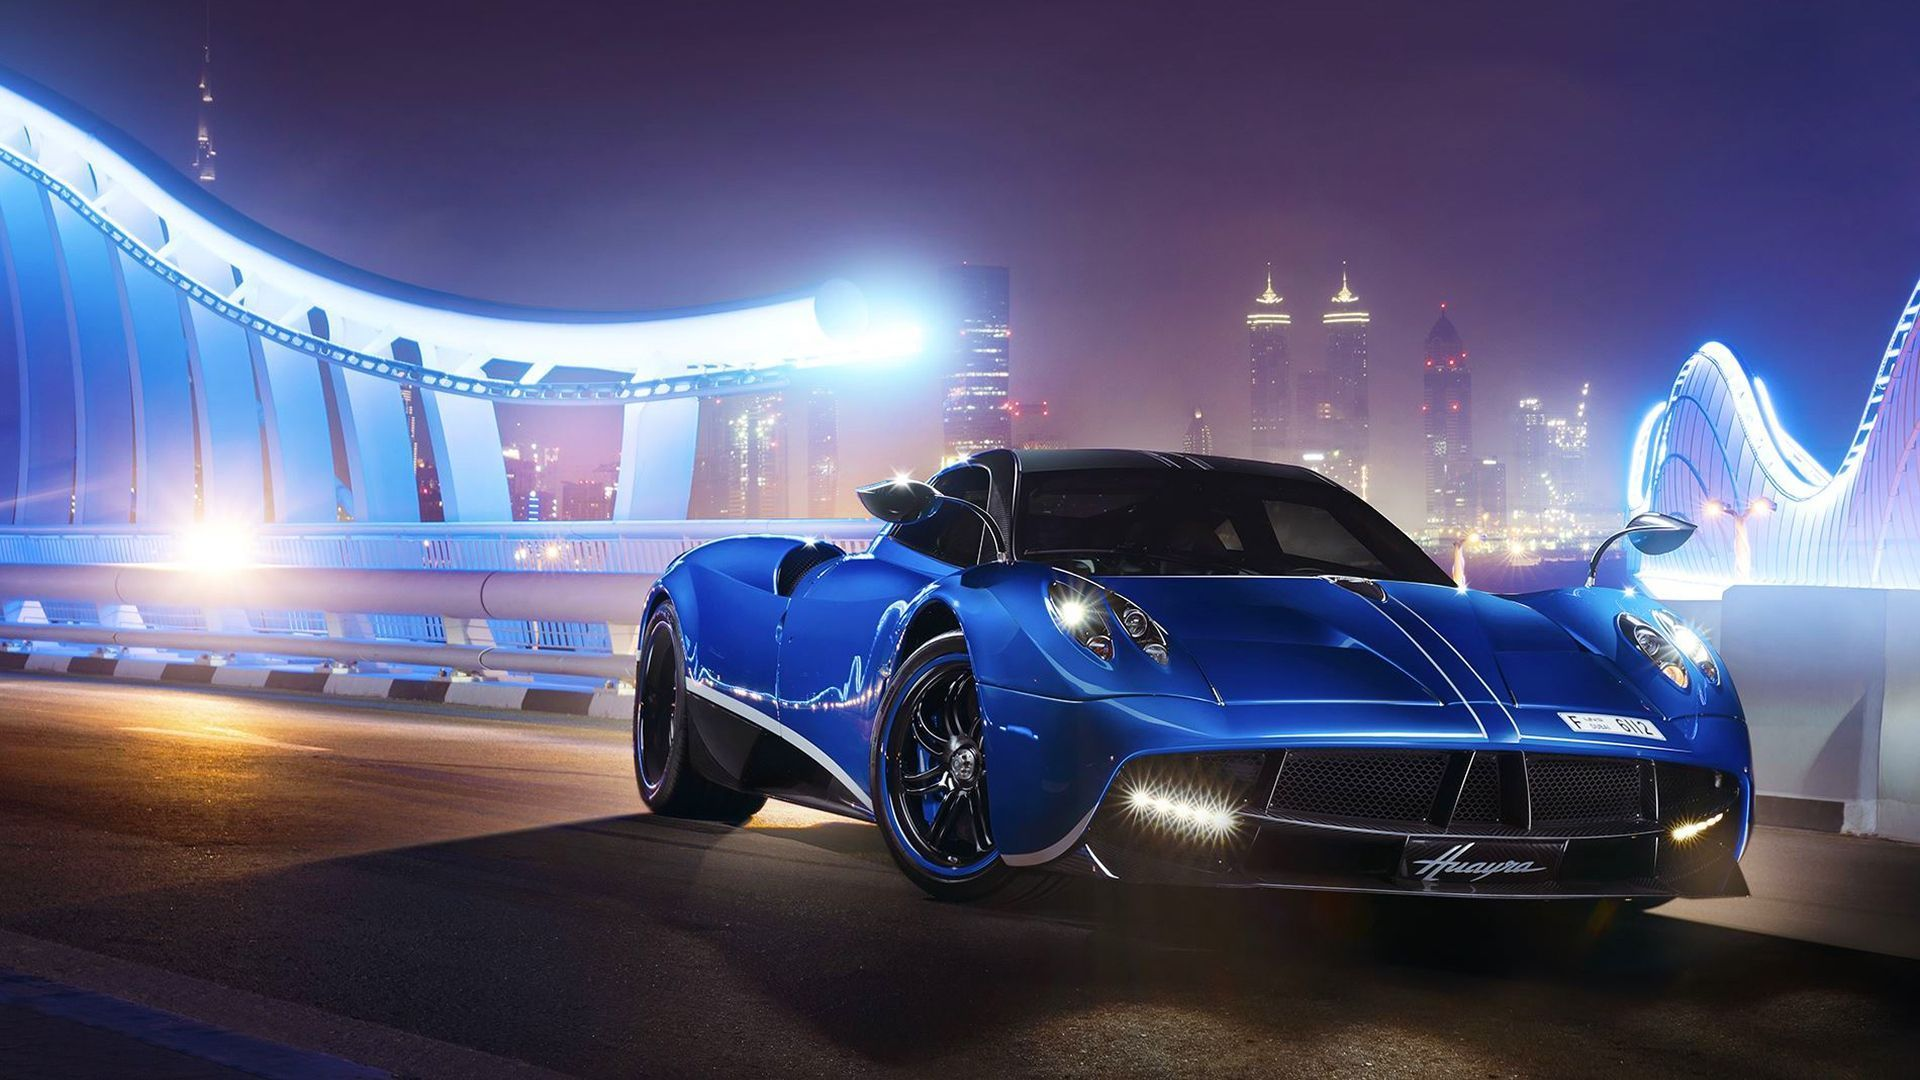 Sport Cars 4k Wallpapers Top Free Sport Cars 4k Backgrounds